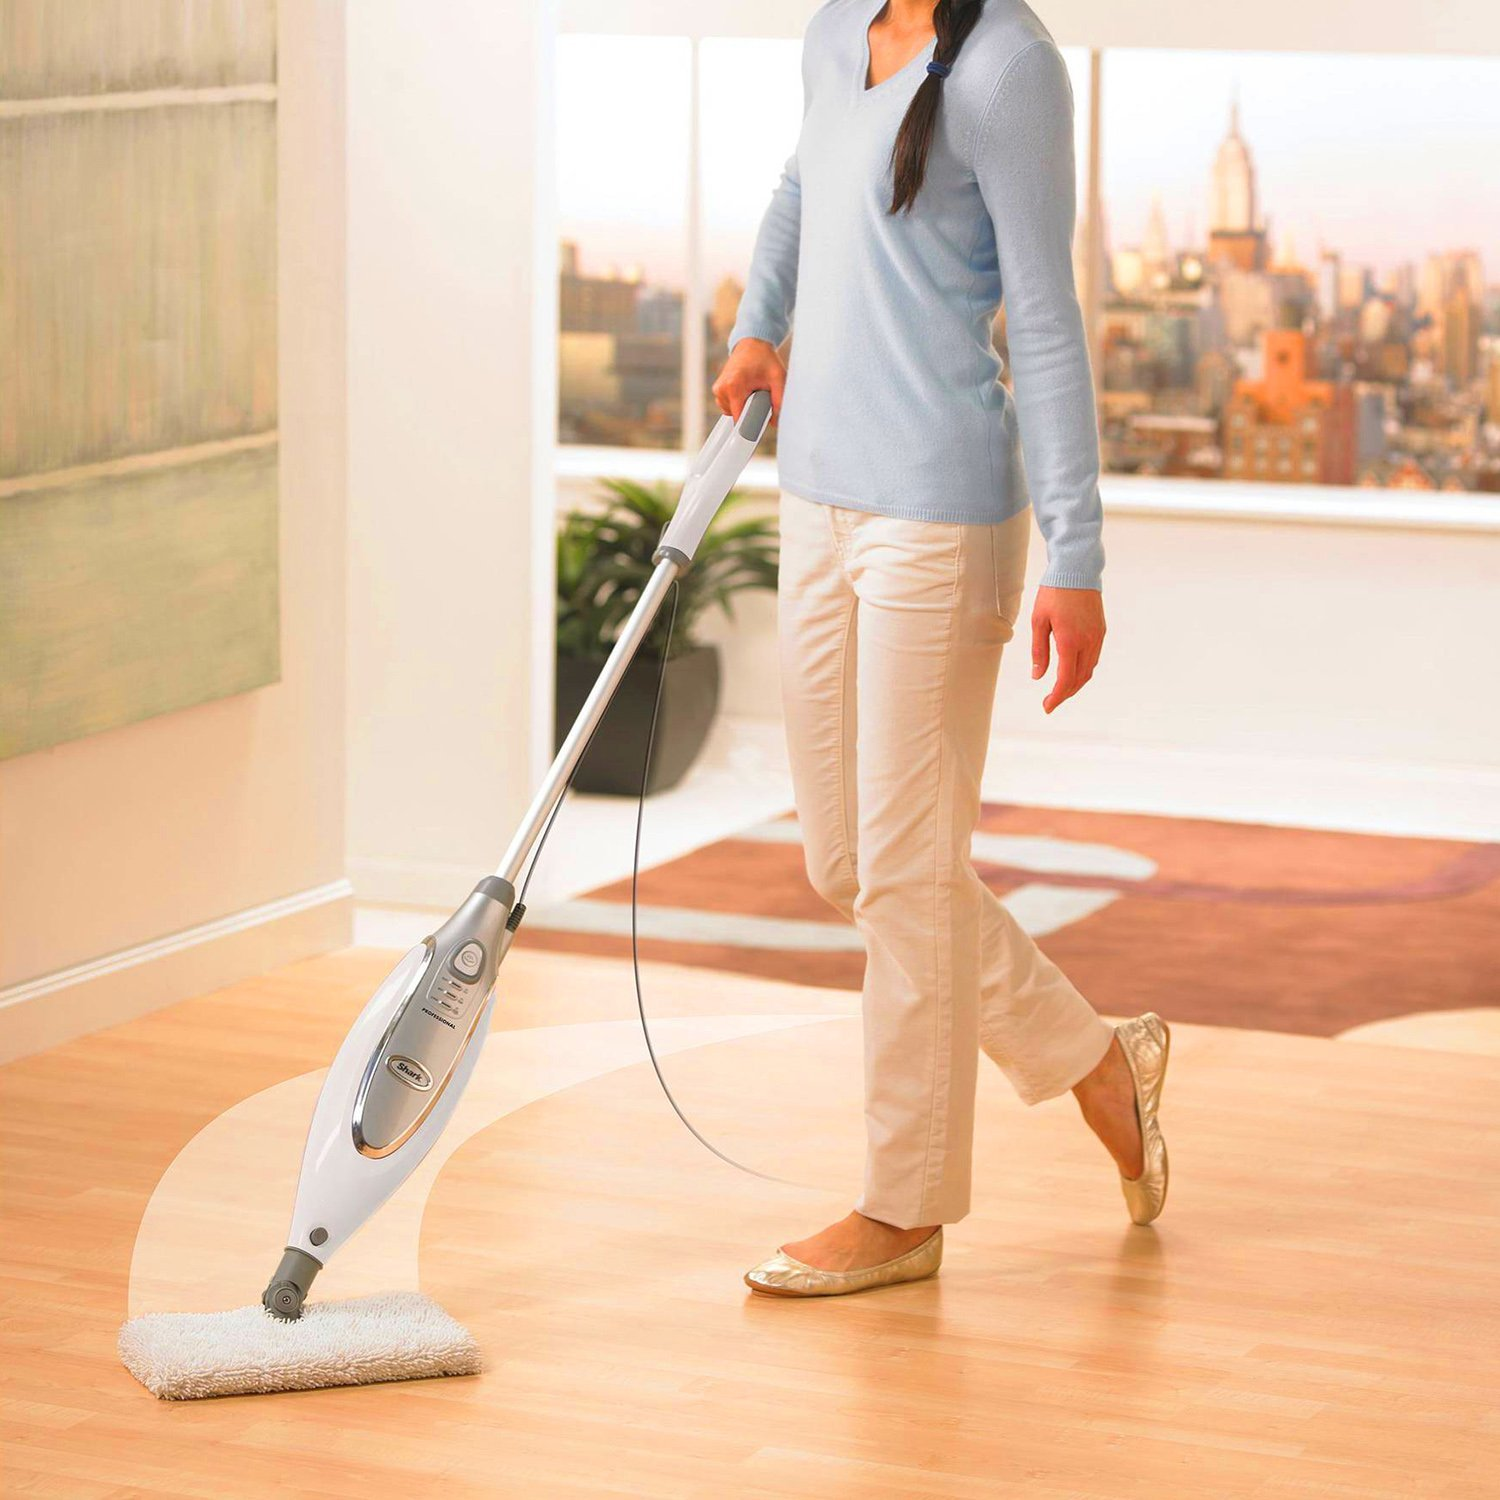 Guidelines for Steam Mop Cleaning